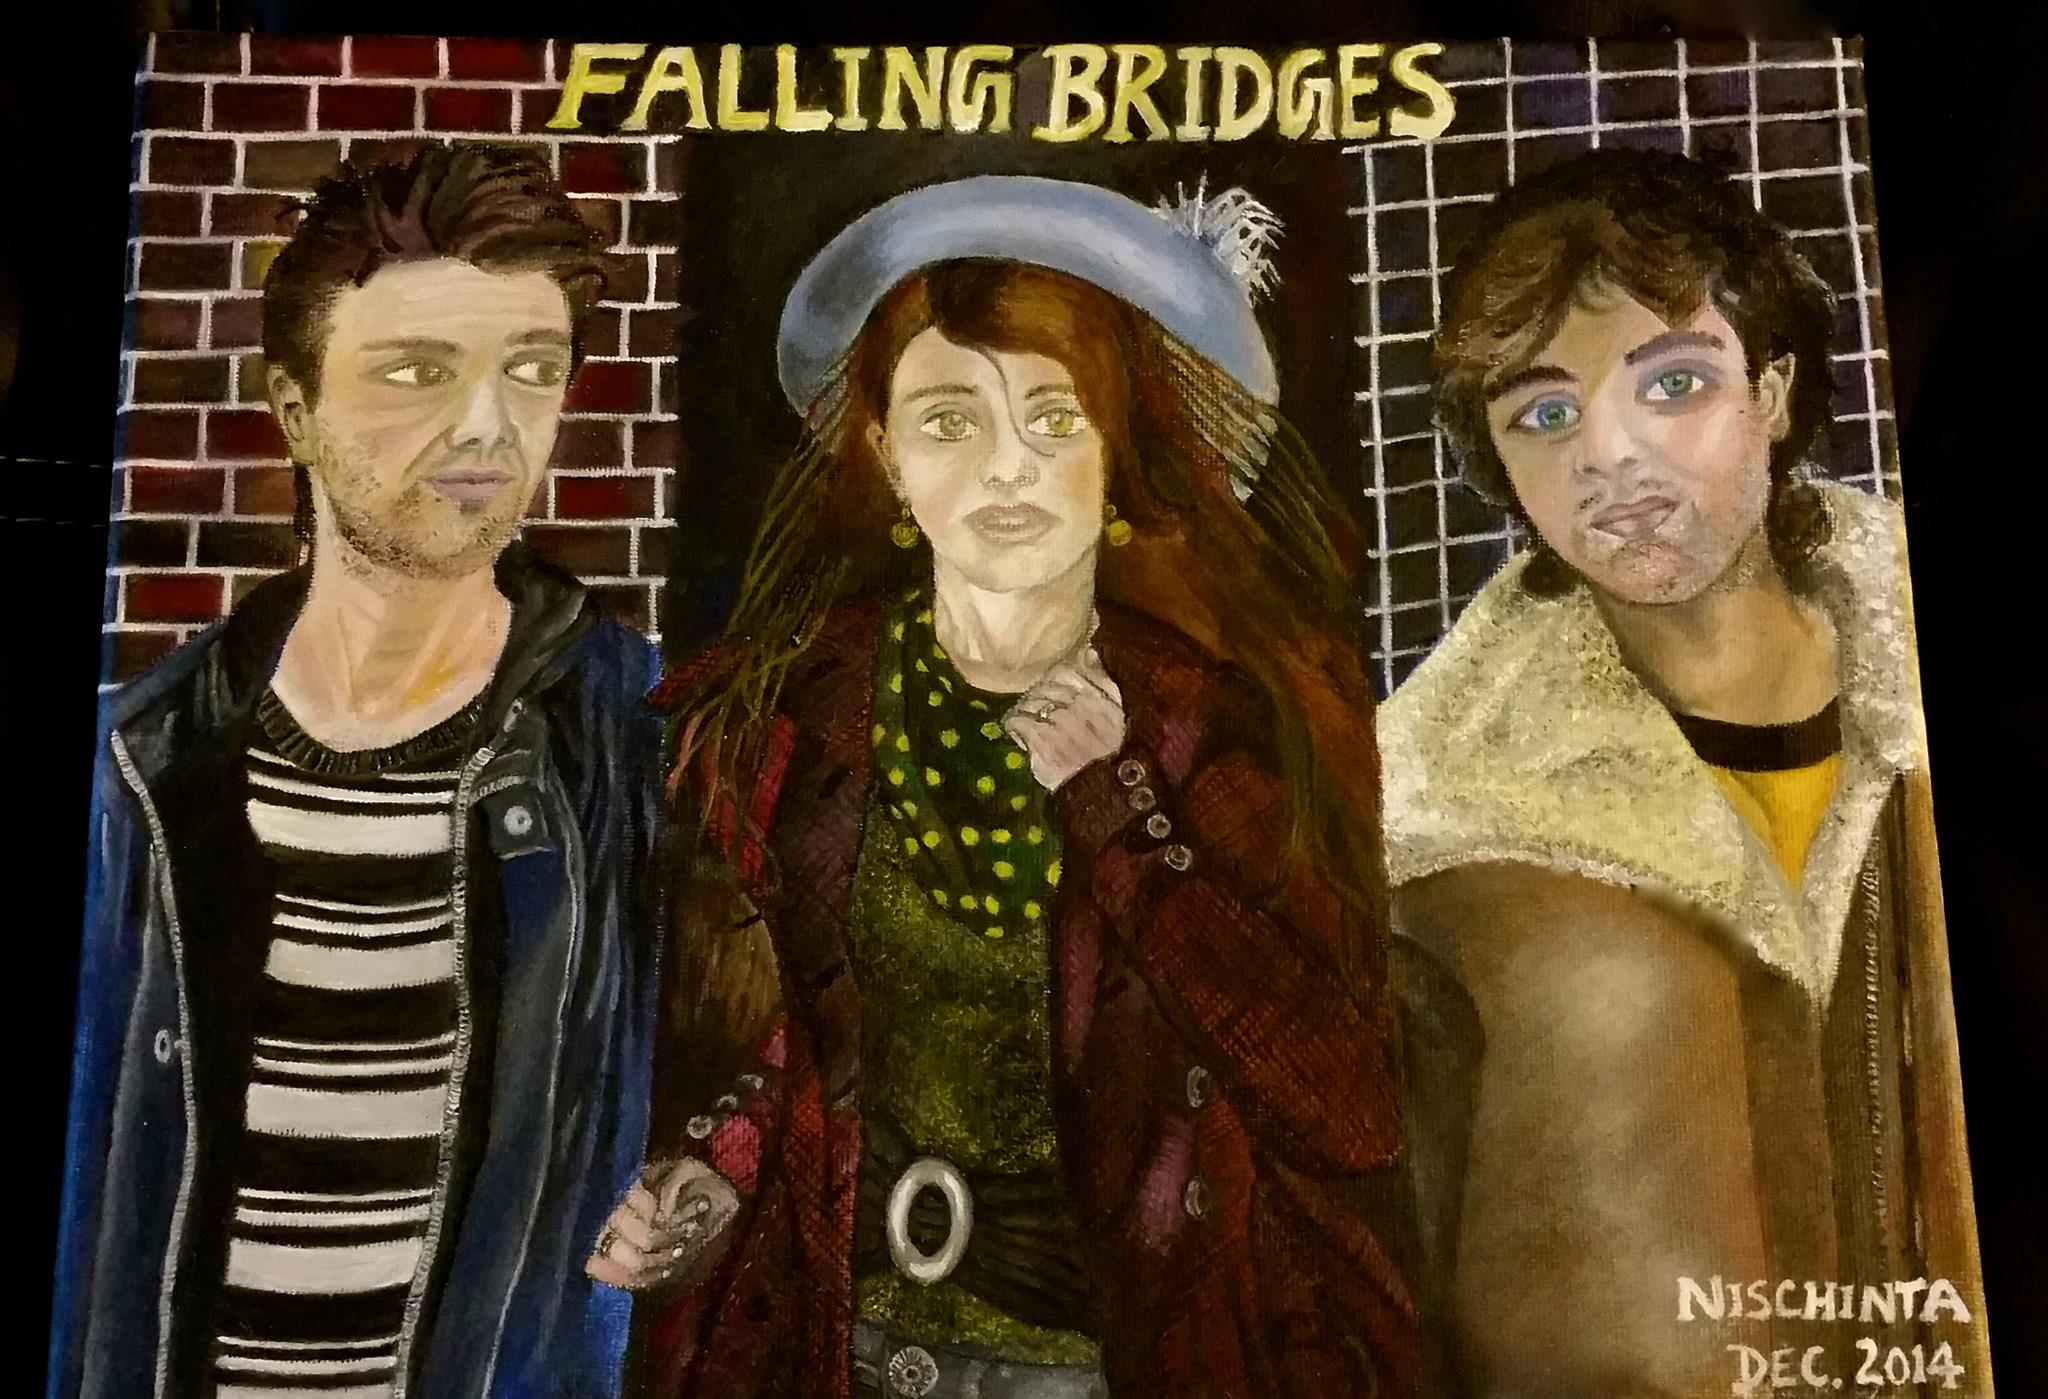 Falling Bridges - OIL ON CANVAS. DEC. 2014This painting is a poster-style fun teaser for the upcoming novel, 'Victims for Sale' originally titled 'Falling Bridges.' The artwork offers a visual representation of the book's lead characters.KEYWORDS: VictimsForSaleBook, London, Painting, Portrait, Books, Thrillers, Bestsellers, NishAmarnathArt